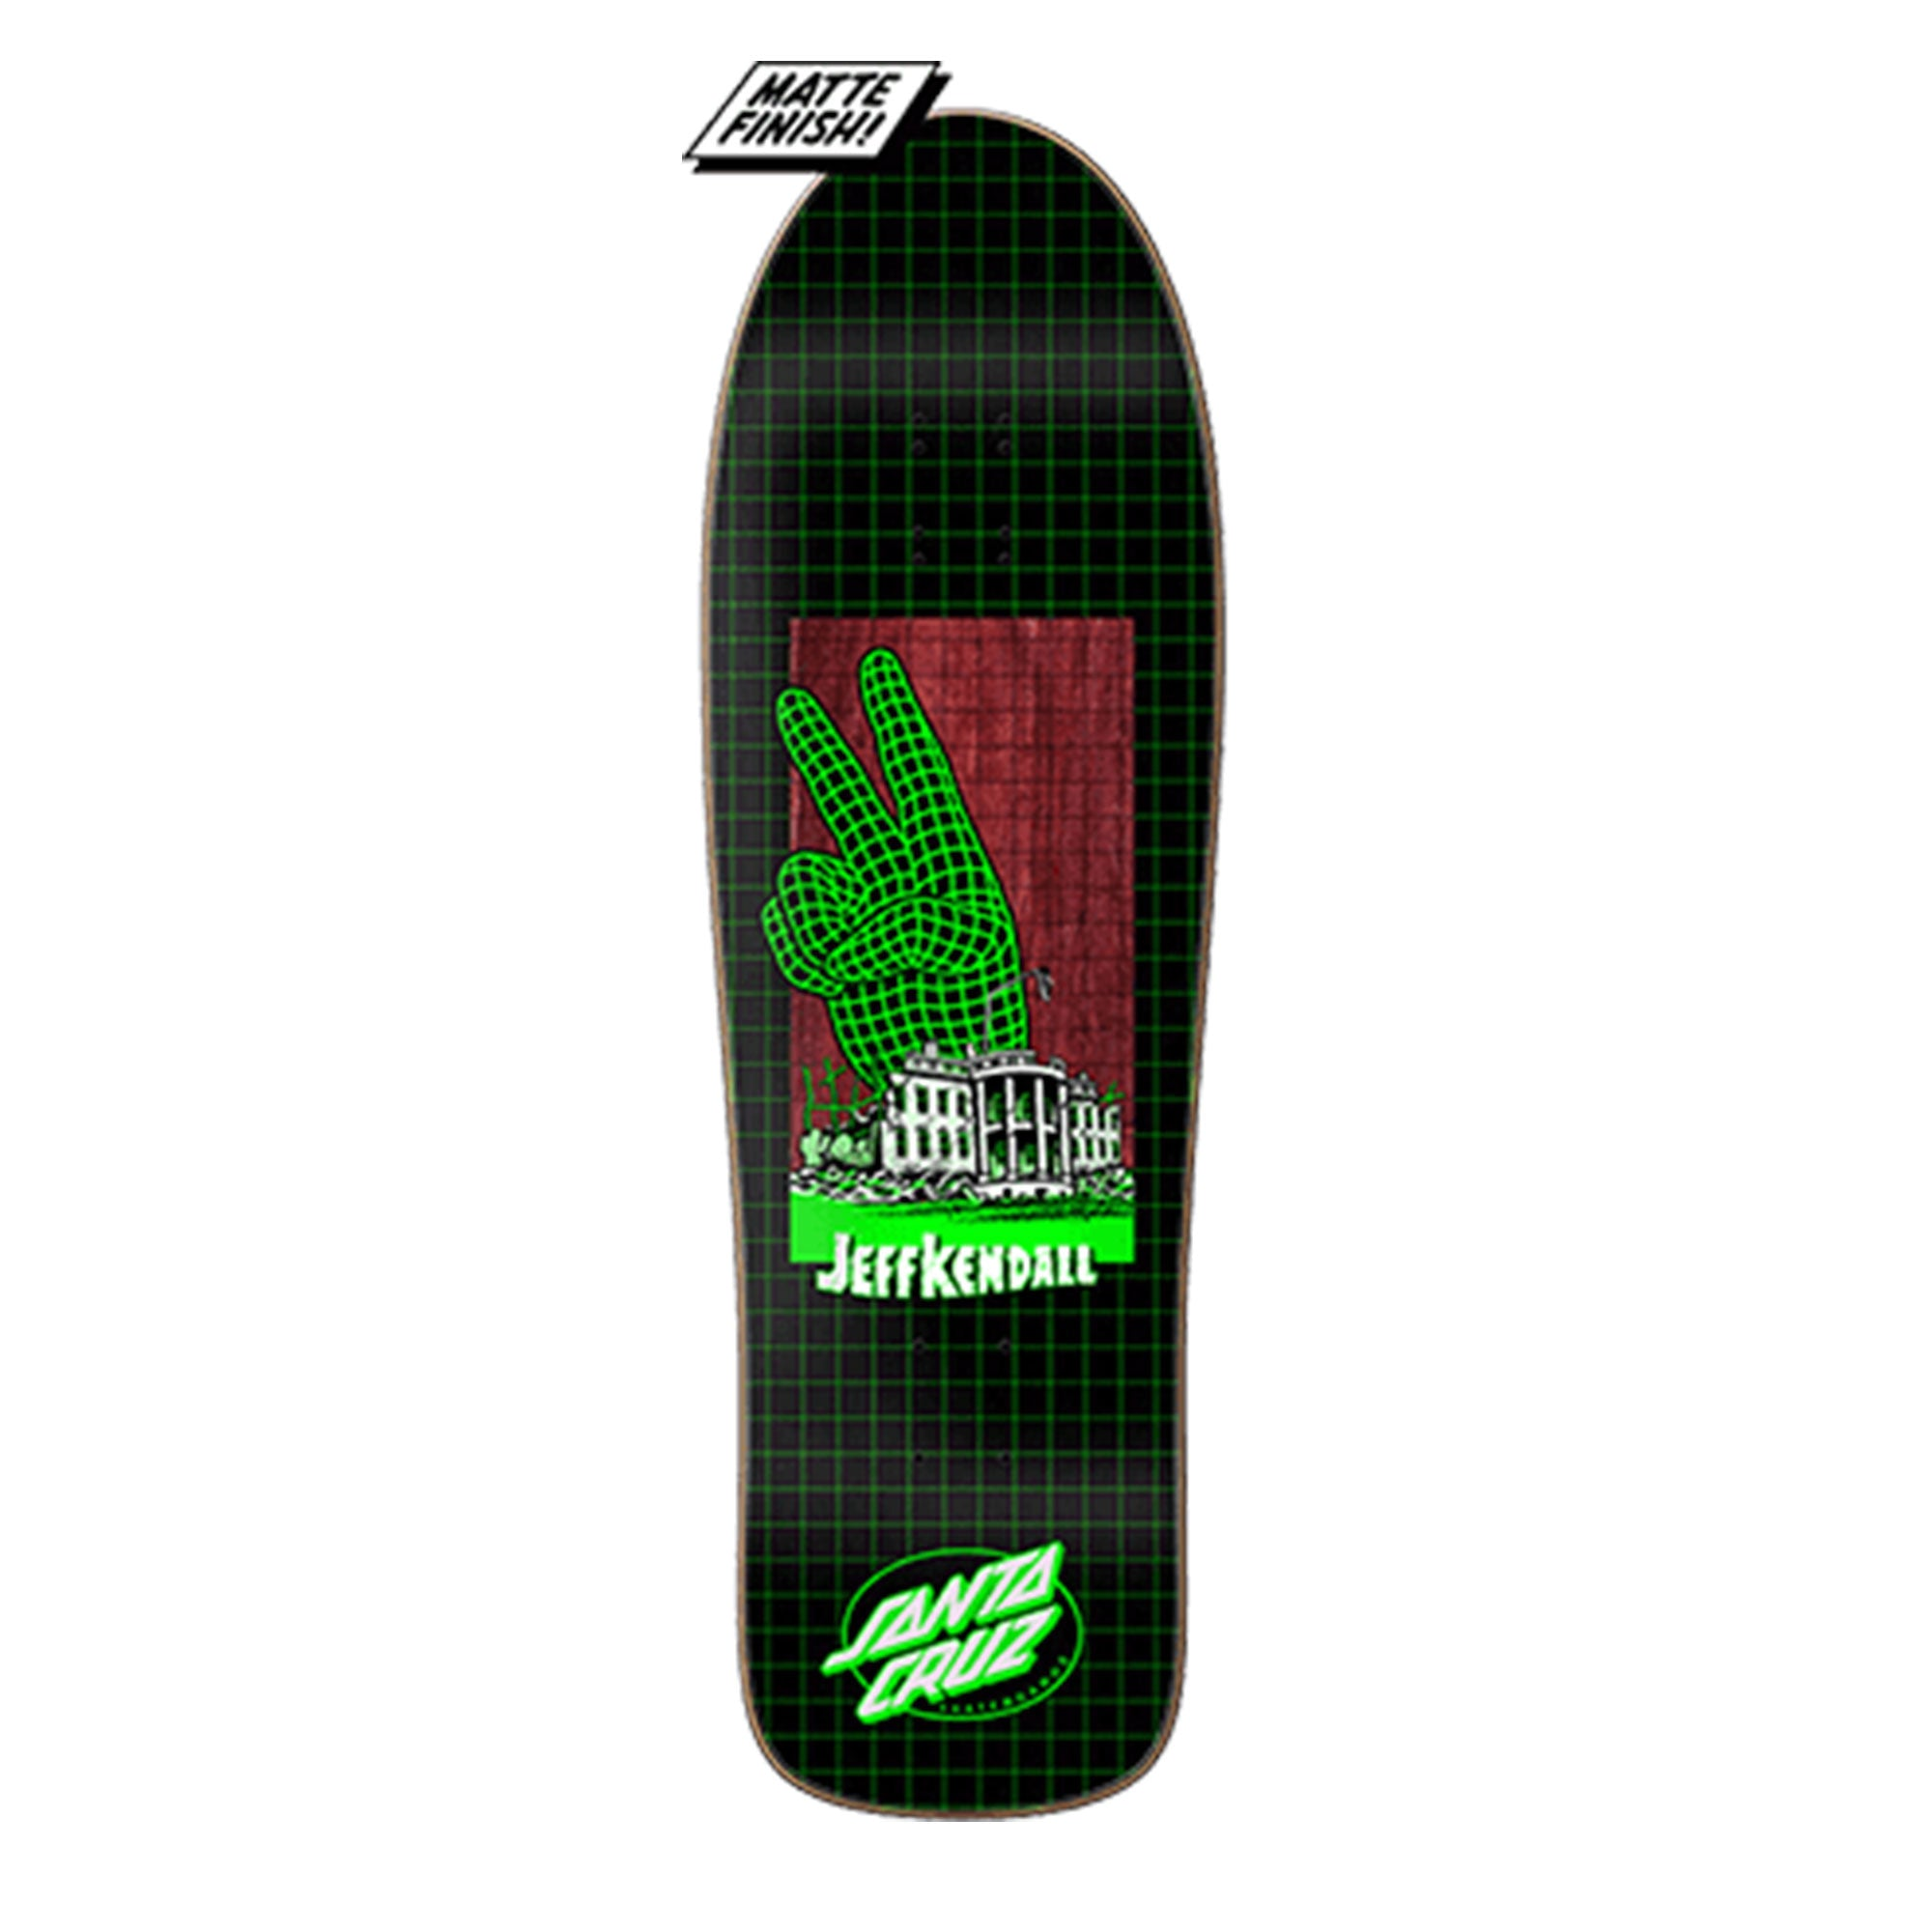 Santa Cruz Kendall Atomic Peace Preissue Deck Product Photo #1